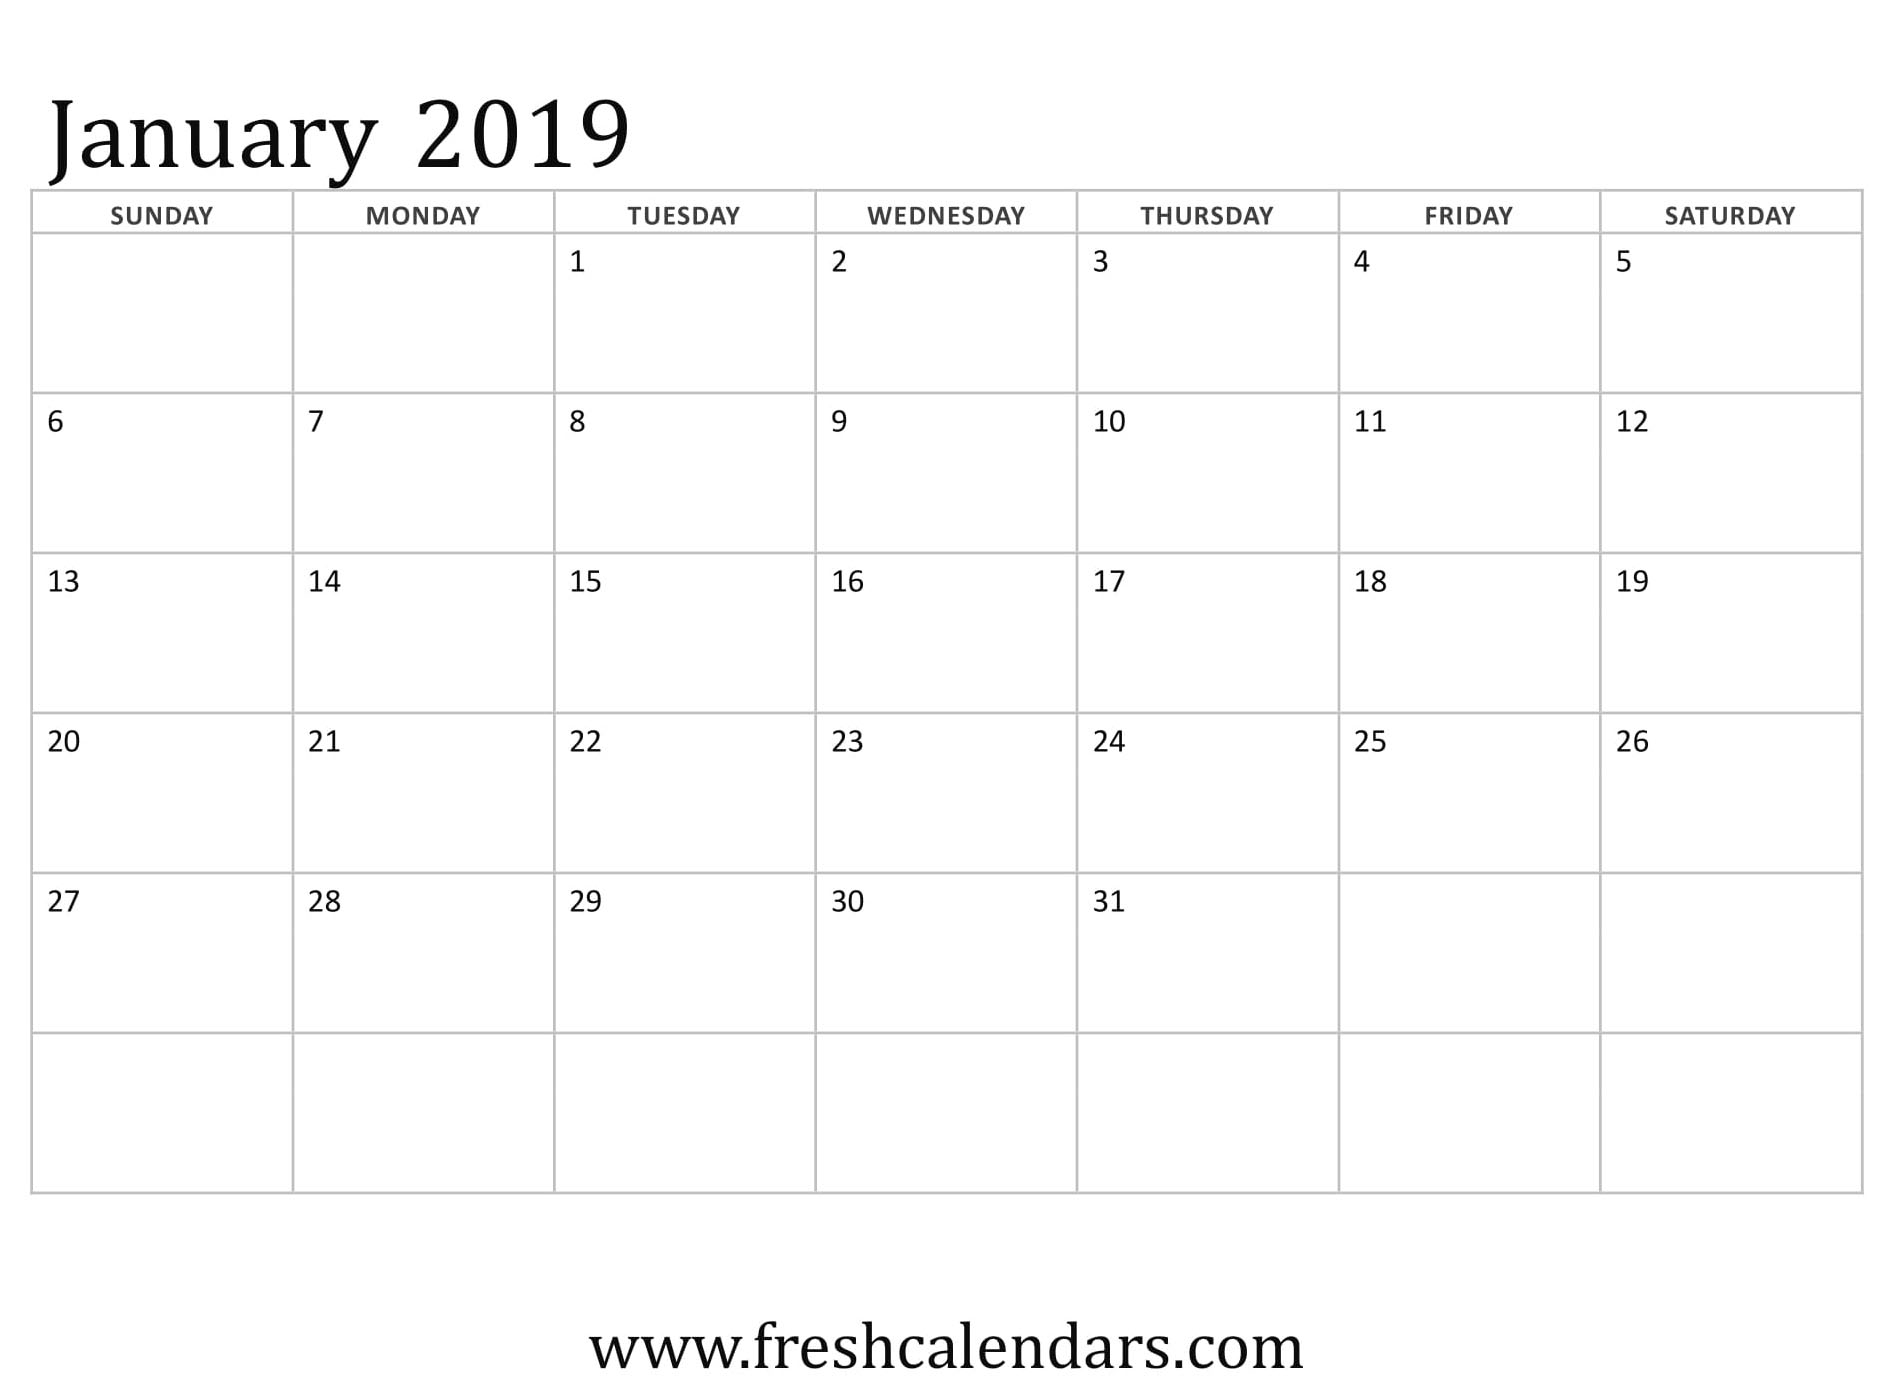 January 2019 Calendar Basic Template